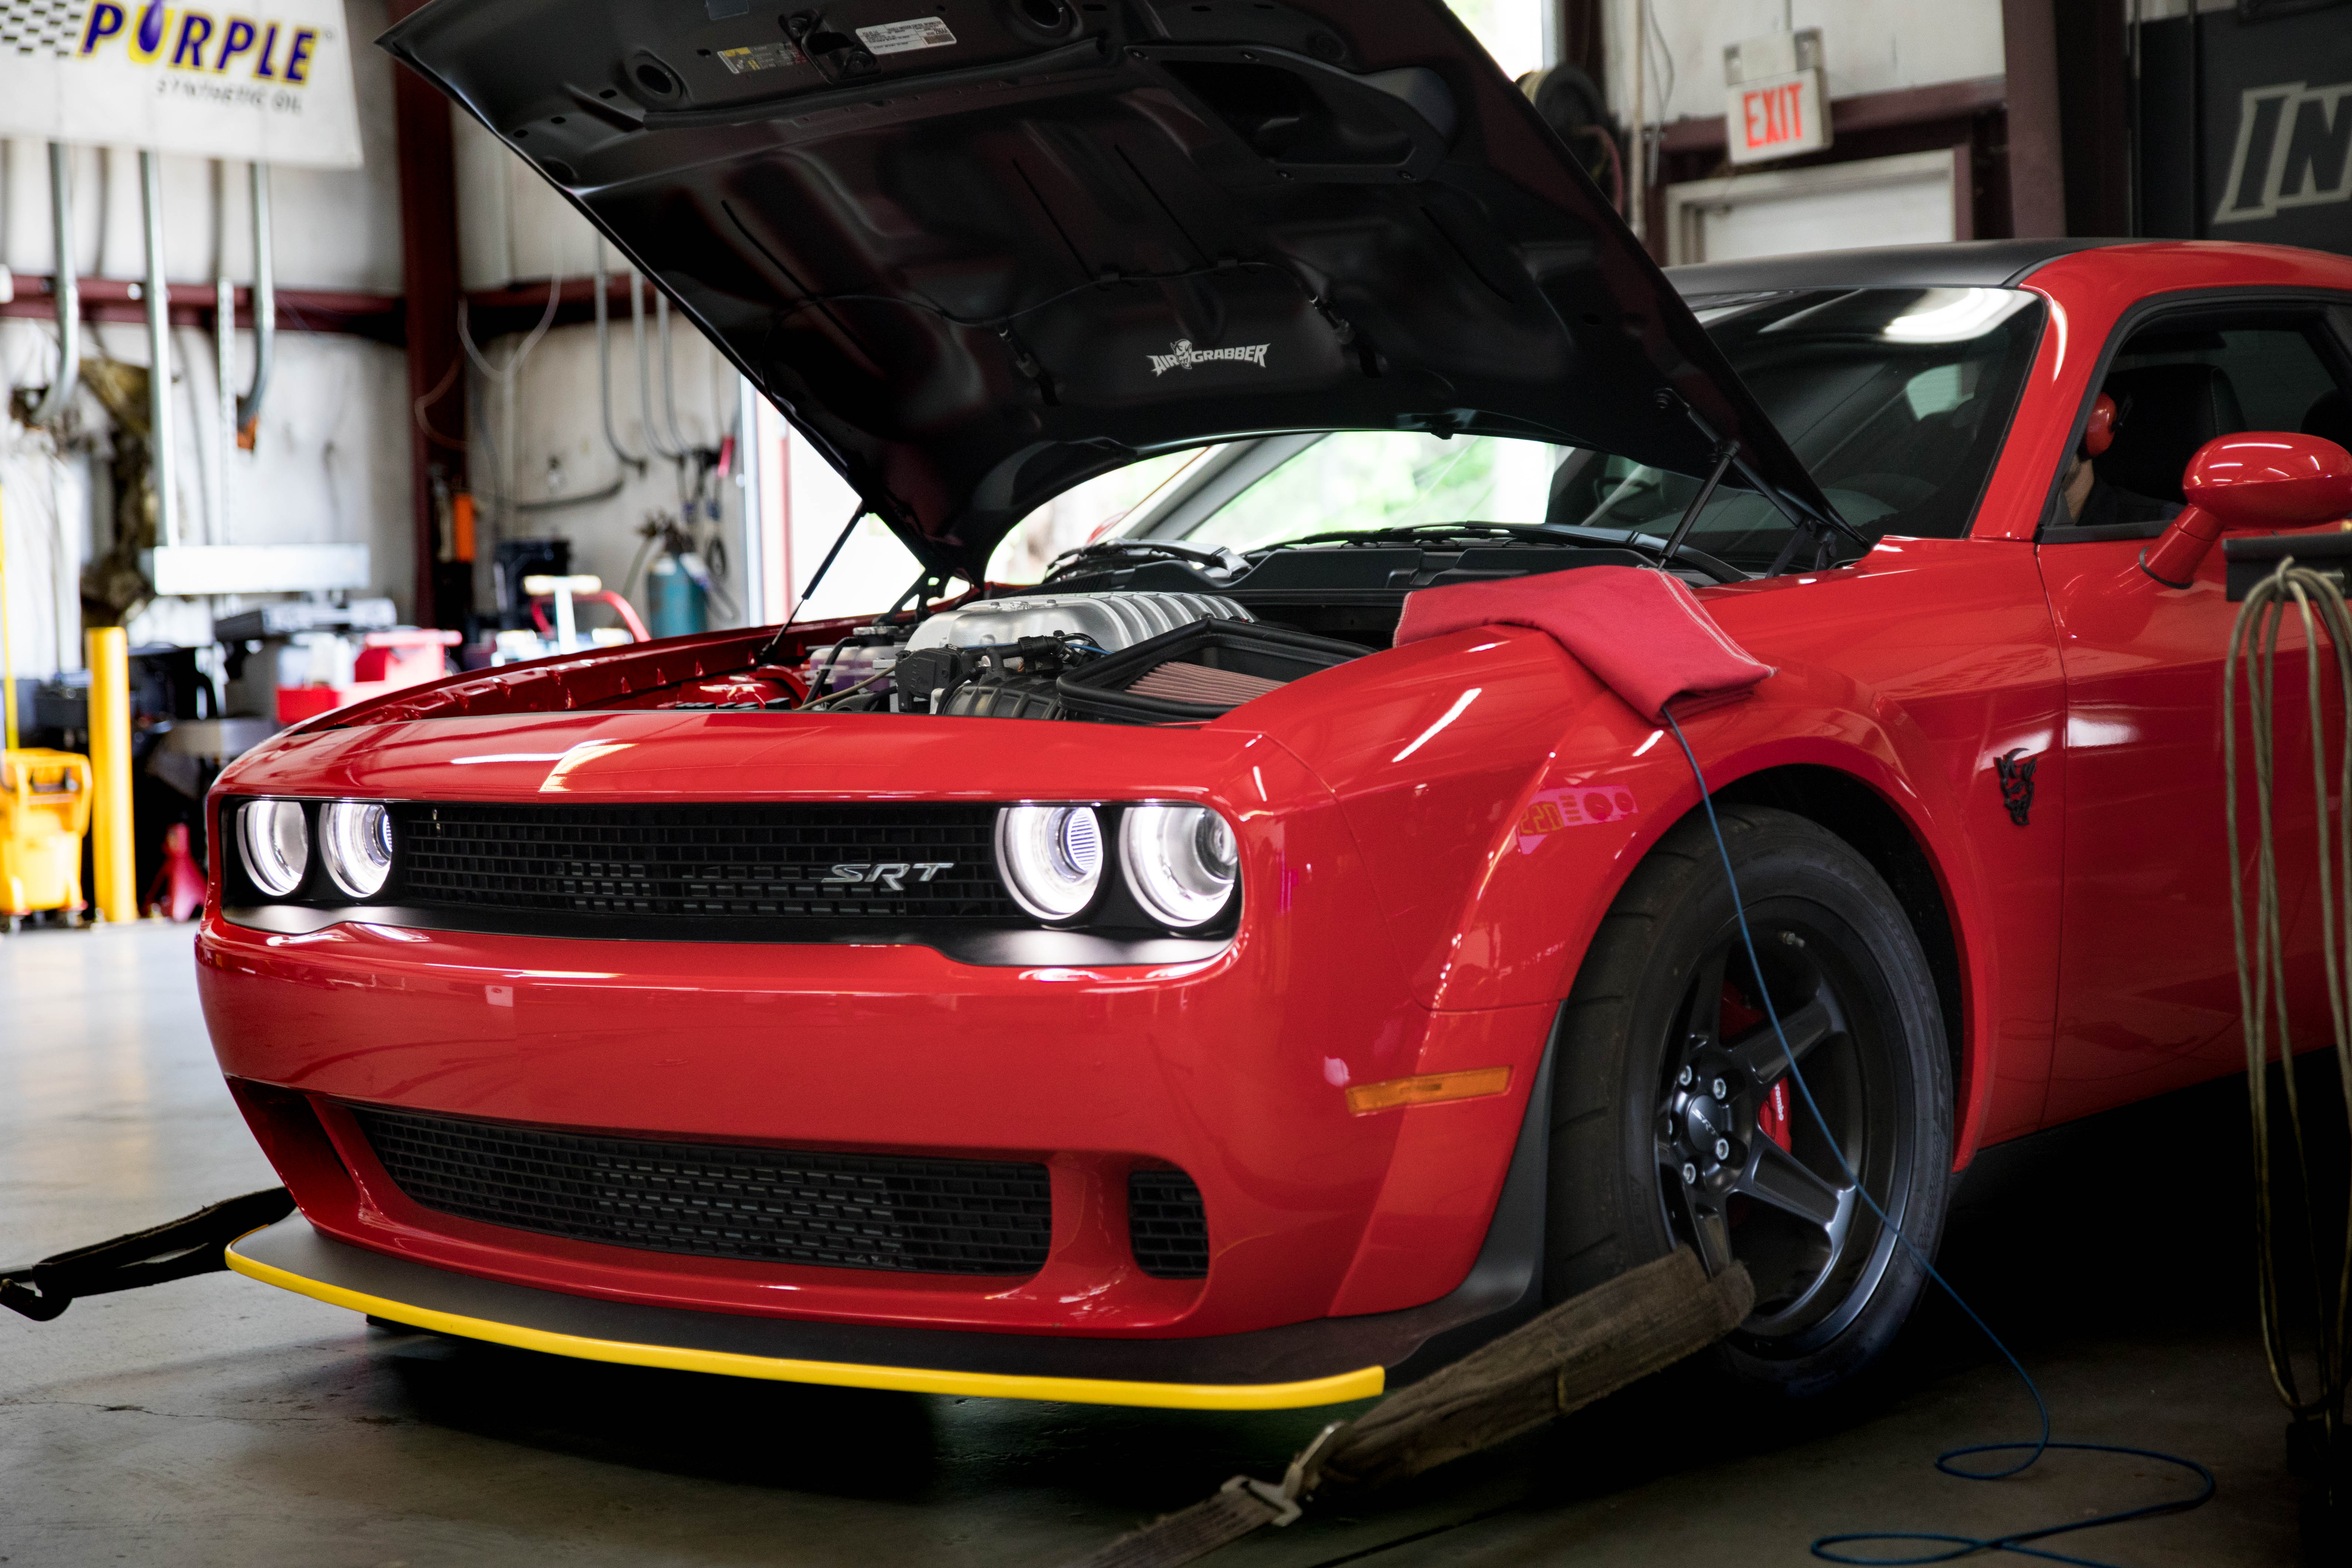 Dyno Tuning | Authorized Dealer & Certified Custom Tuning facility